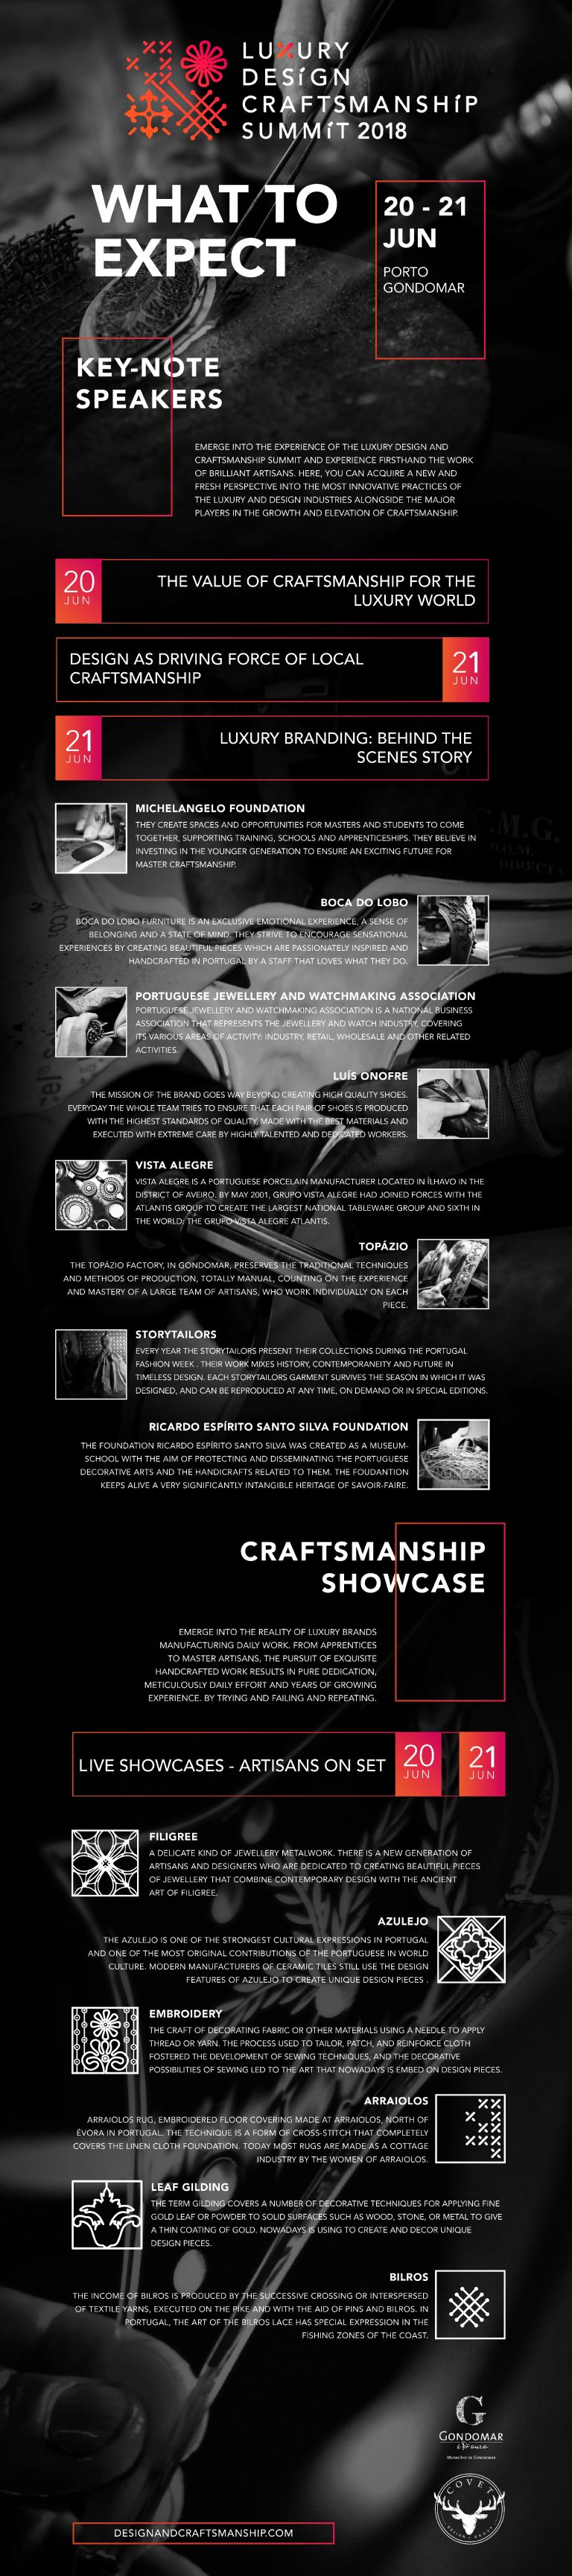 Keeping Up With The Luxury and Craftmanship Summit 2018! 2 Luxury and Craftmanship Summit 2018 Keeping Up With The Luxury and Craftmanship Summit 2018! Keeping Up With The Luxury and Craftmanship Summit 2018 2